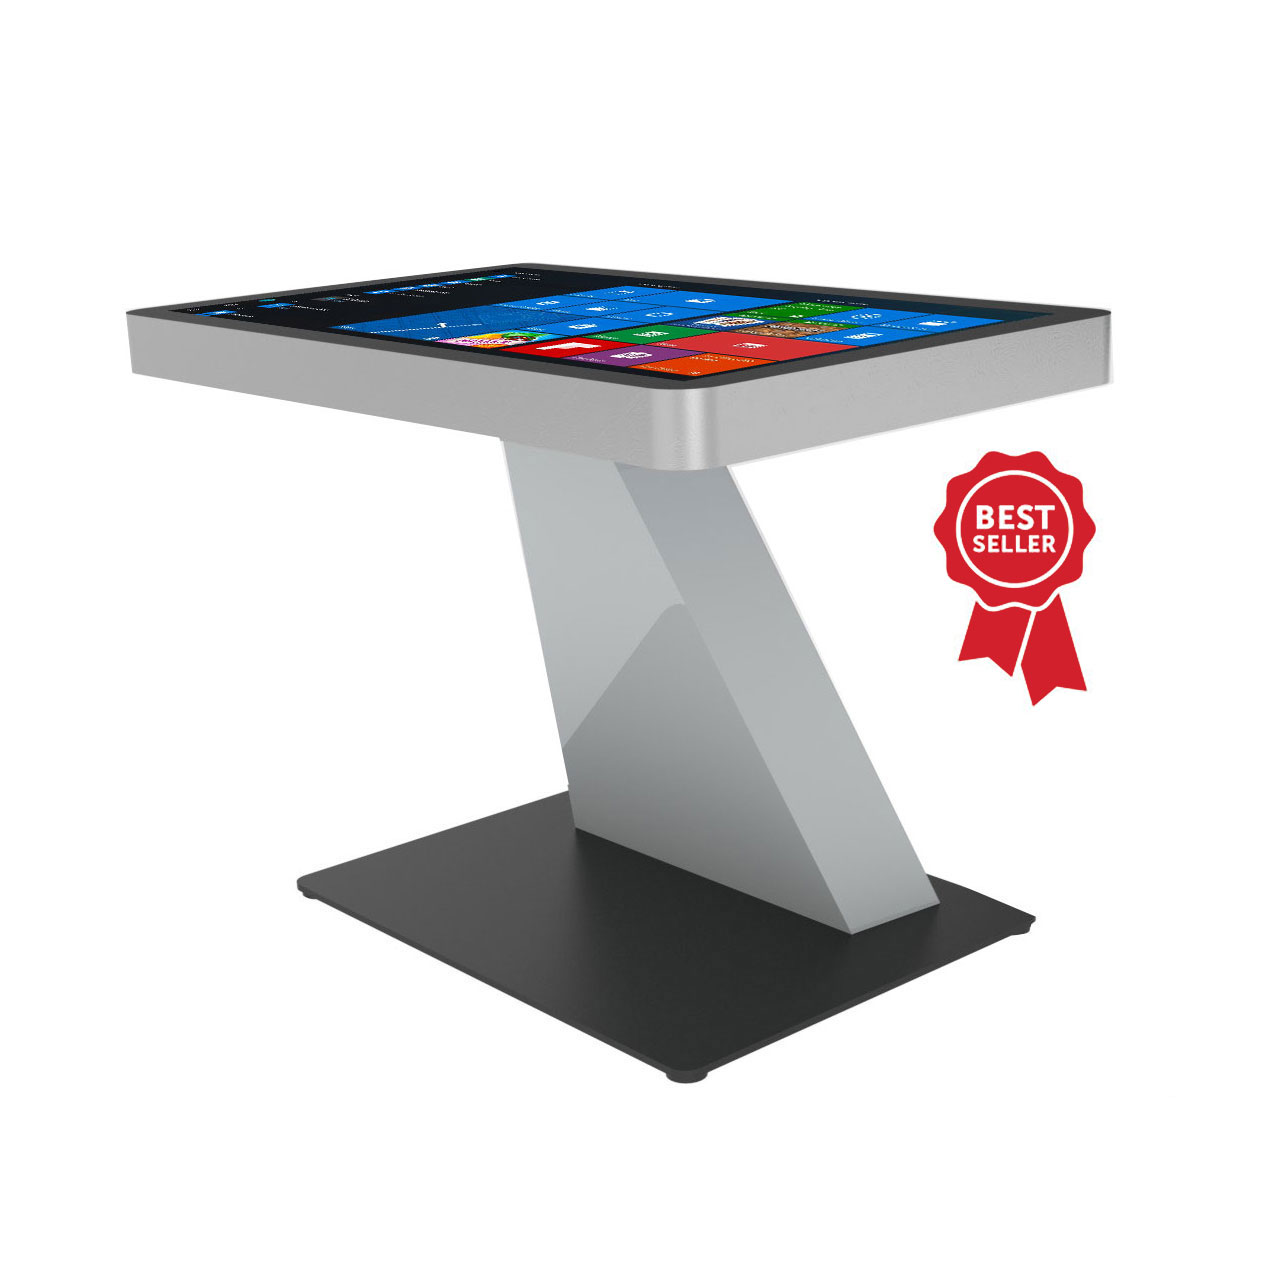 Table digitale 43 pouces interactive best seller